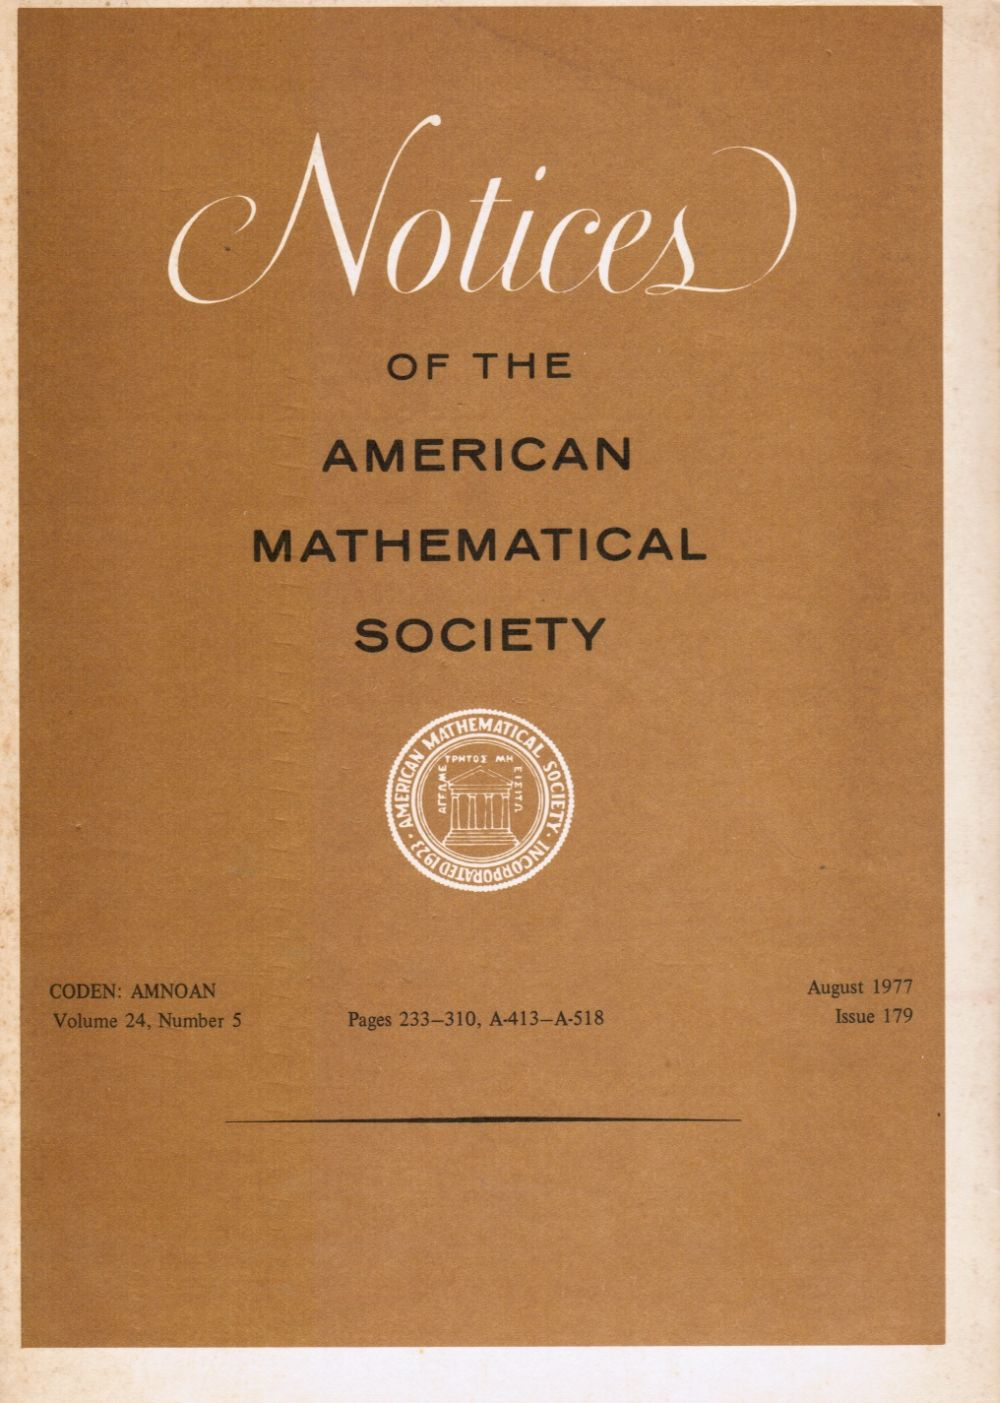 Image for Notices of the American Mathematical Society: Volume 24, Number 5, August 1977